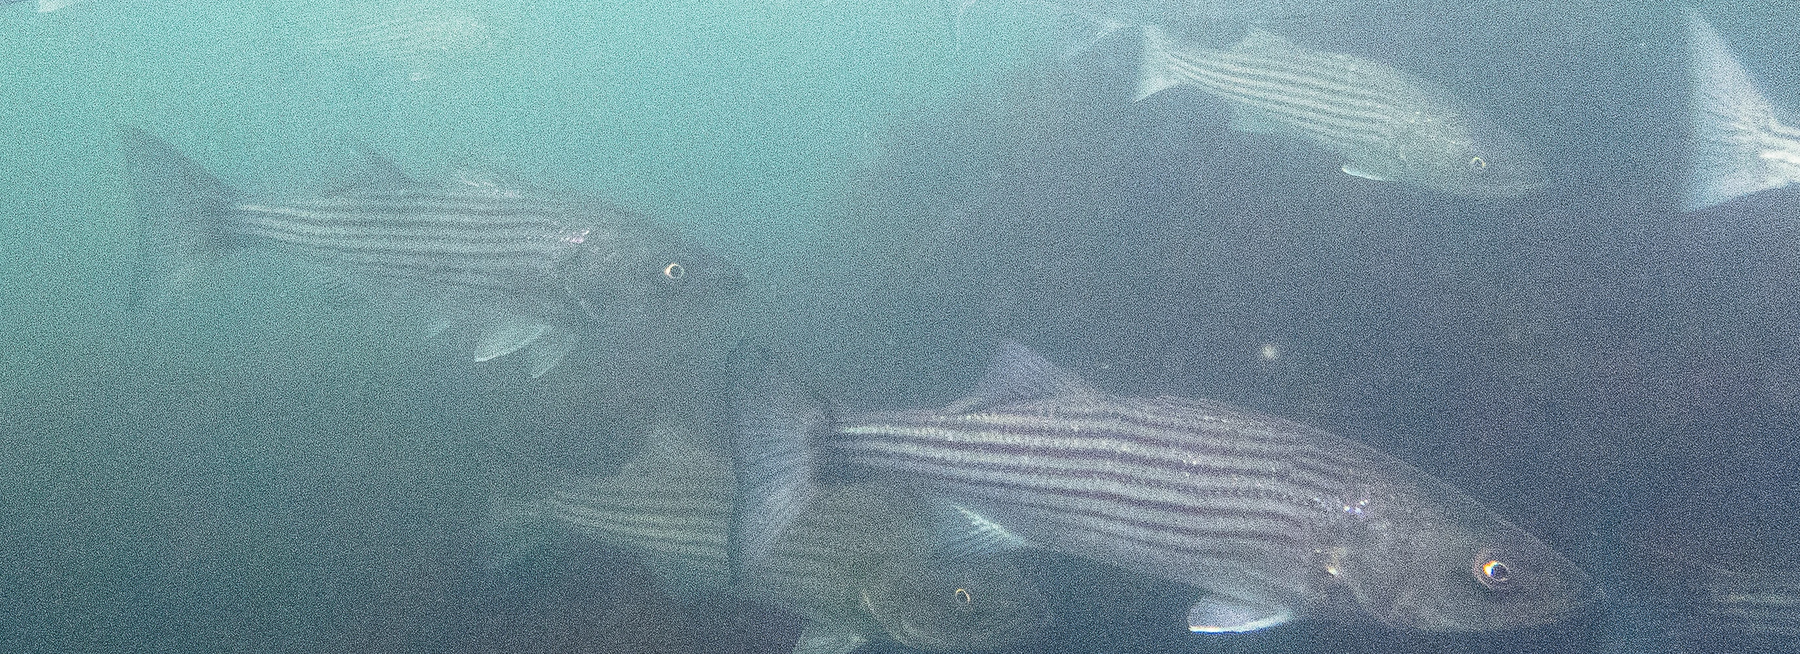 Comments on Atlantic Striped Bass Amendment 7 Public Information Document